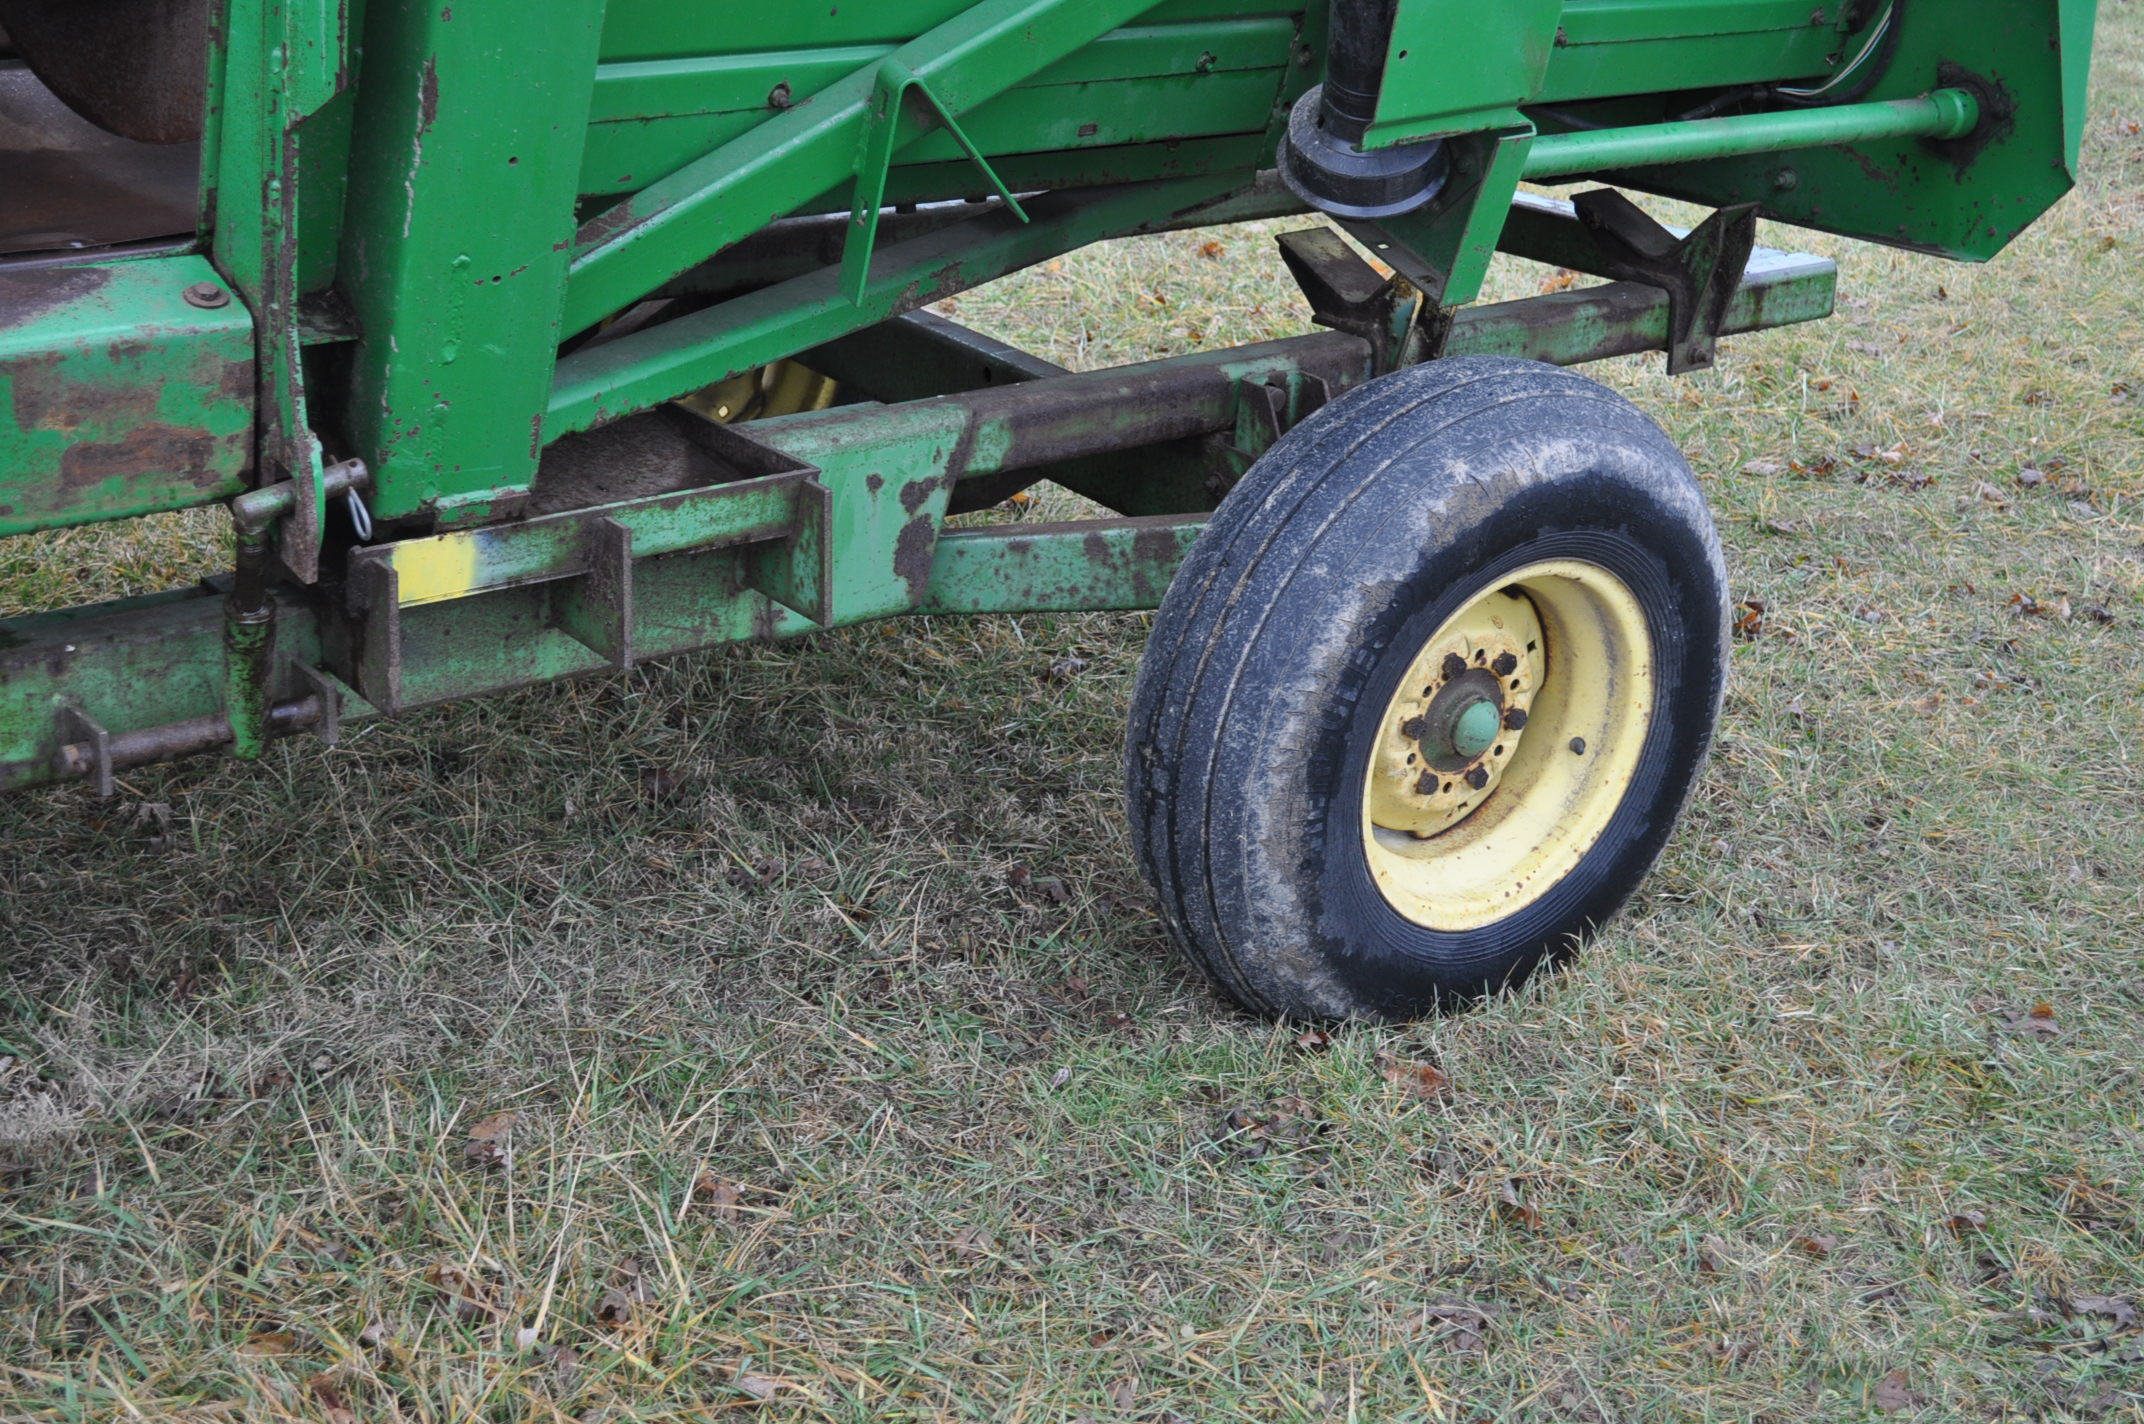 20' John Deere header wagon, 9.5 L-15 tires - Image 3 of 6